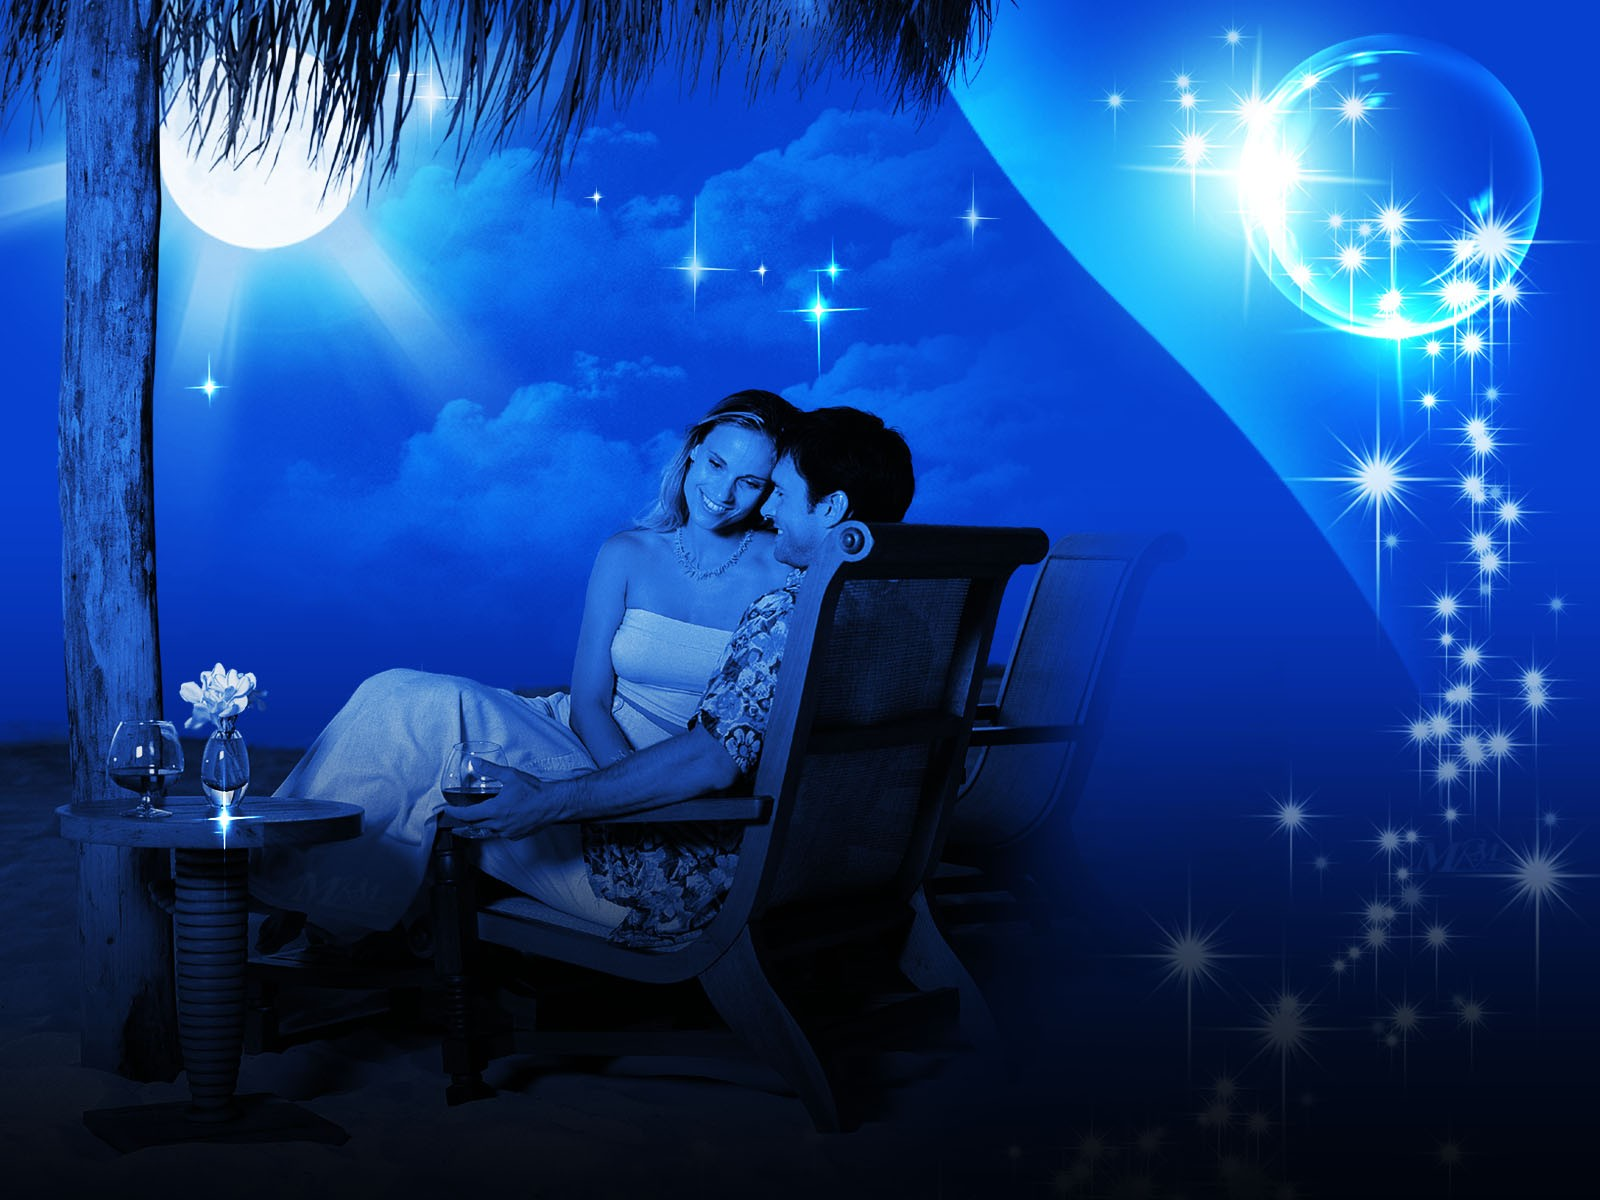 ... romance in moon light - Romantic Love wallpapers for Valentine's Day